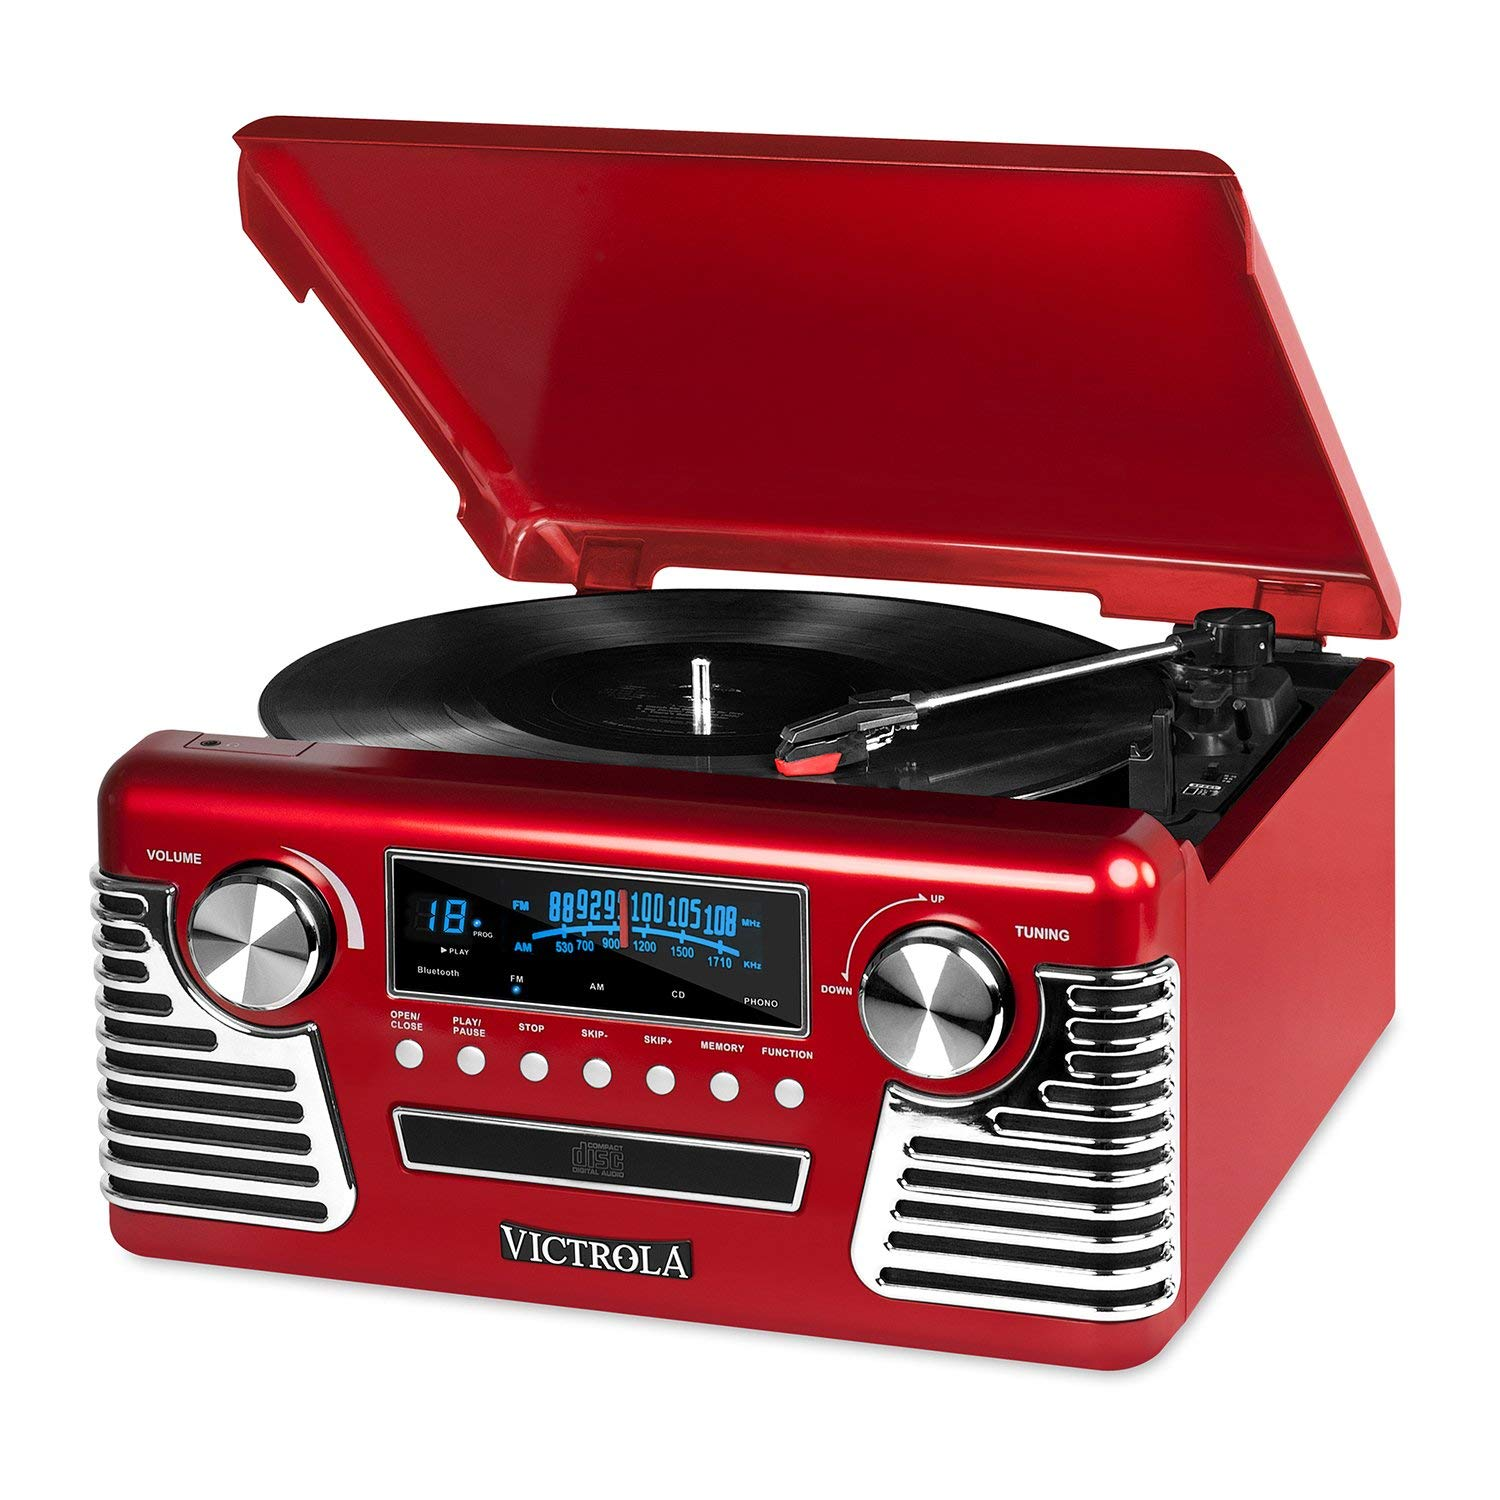 Victrola 50's Retro 3-Speed Bluetooth Turntable with Stereo, CD Player and Speakers, Red (Certified Refurbished)